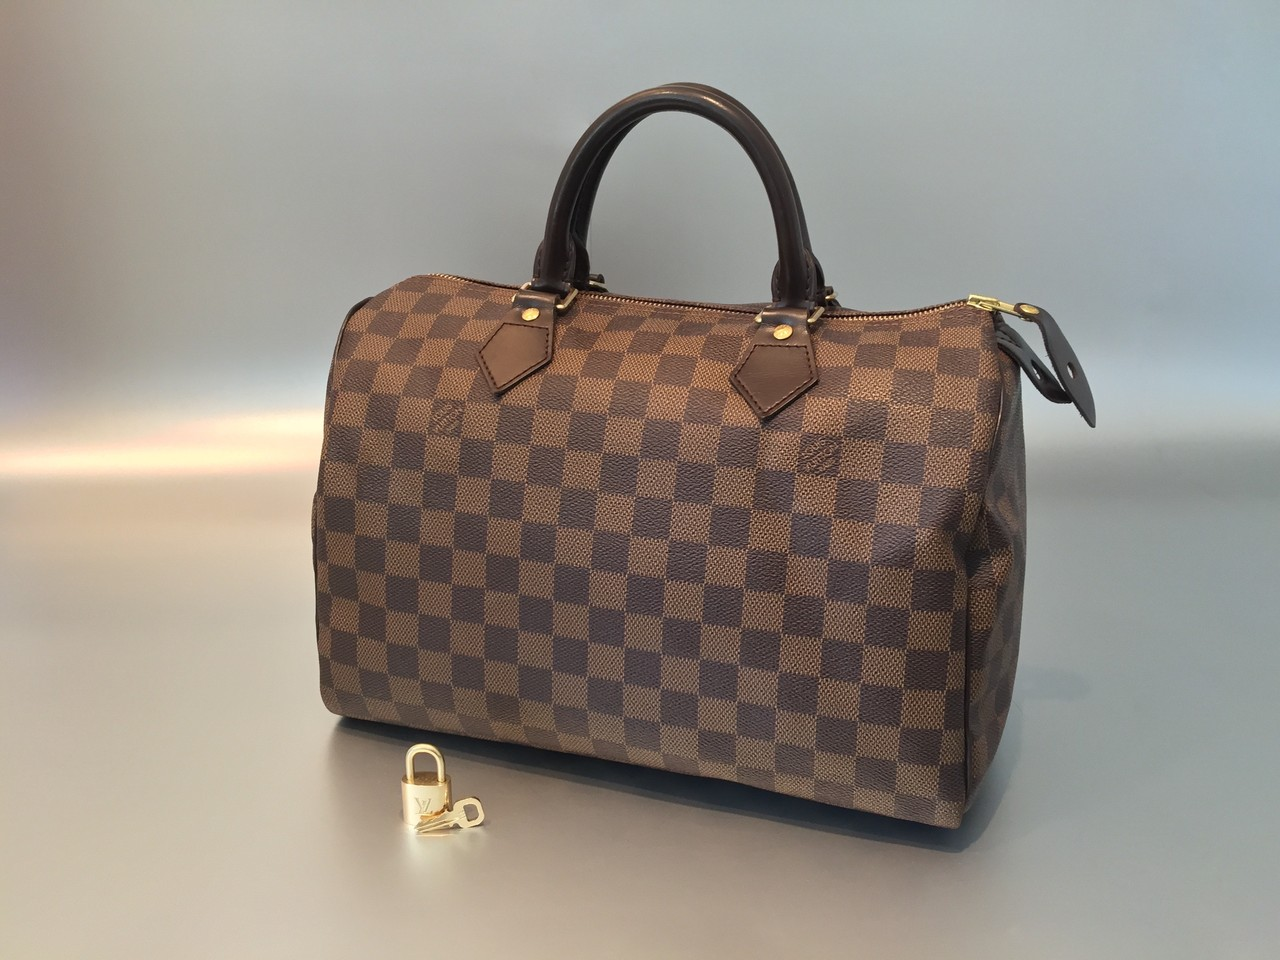 louis vuitton damier ebene speedy 30 ankauf verkauf second hand designertaschen und accessoires. Black Bedroom Furniture Sets. Home Design Ideas